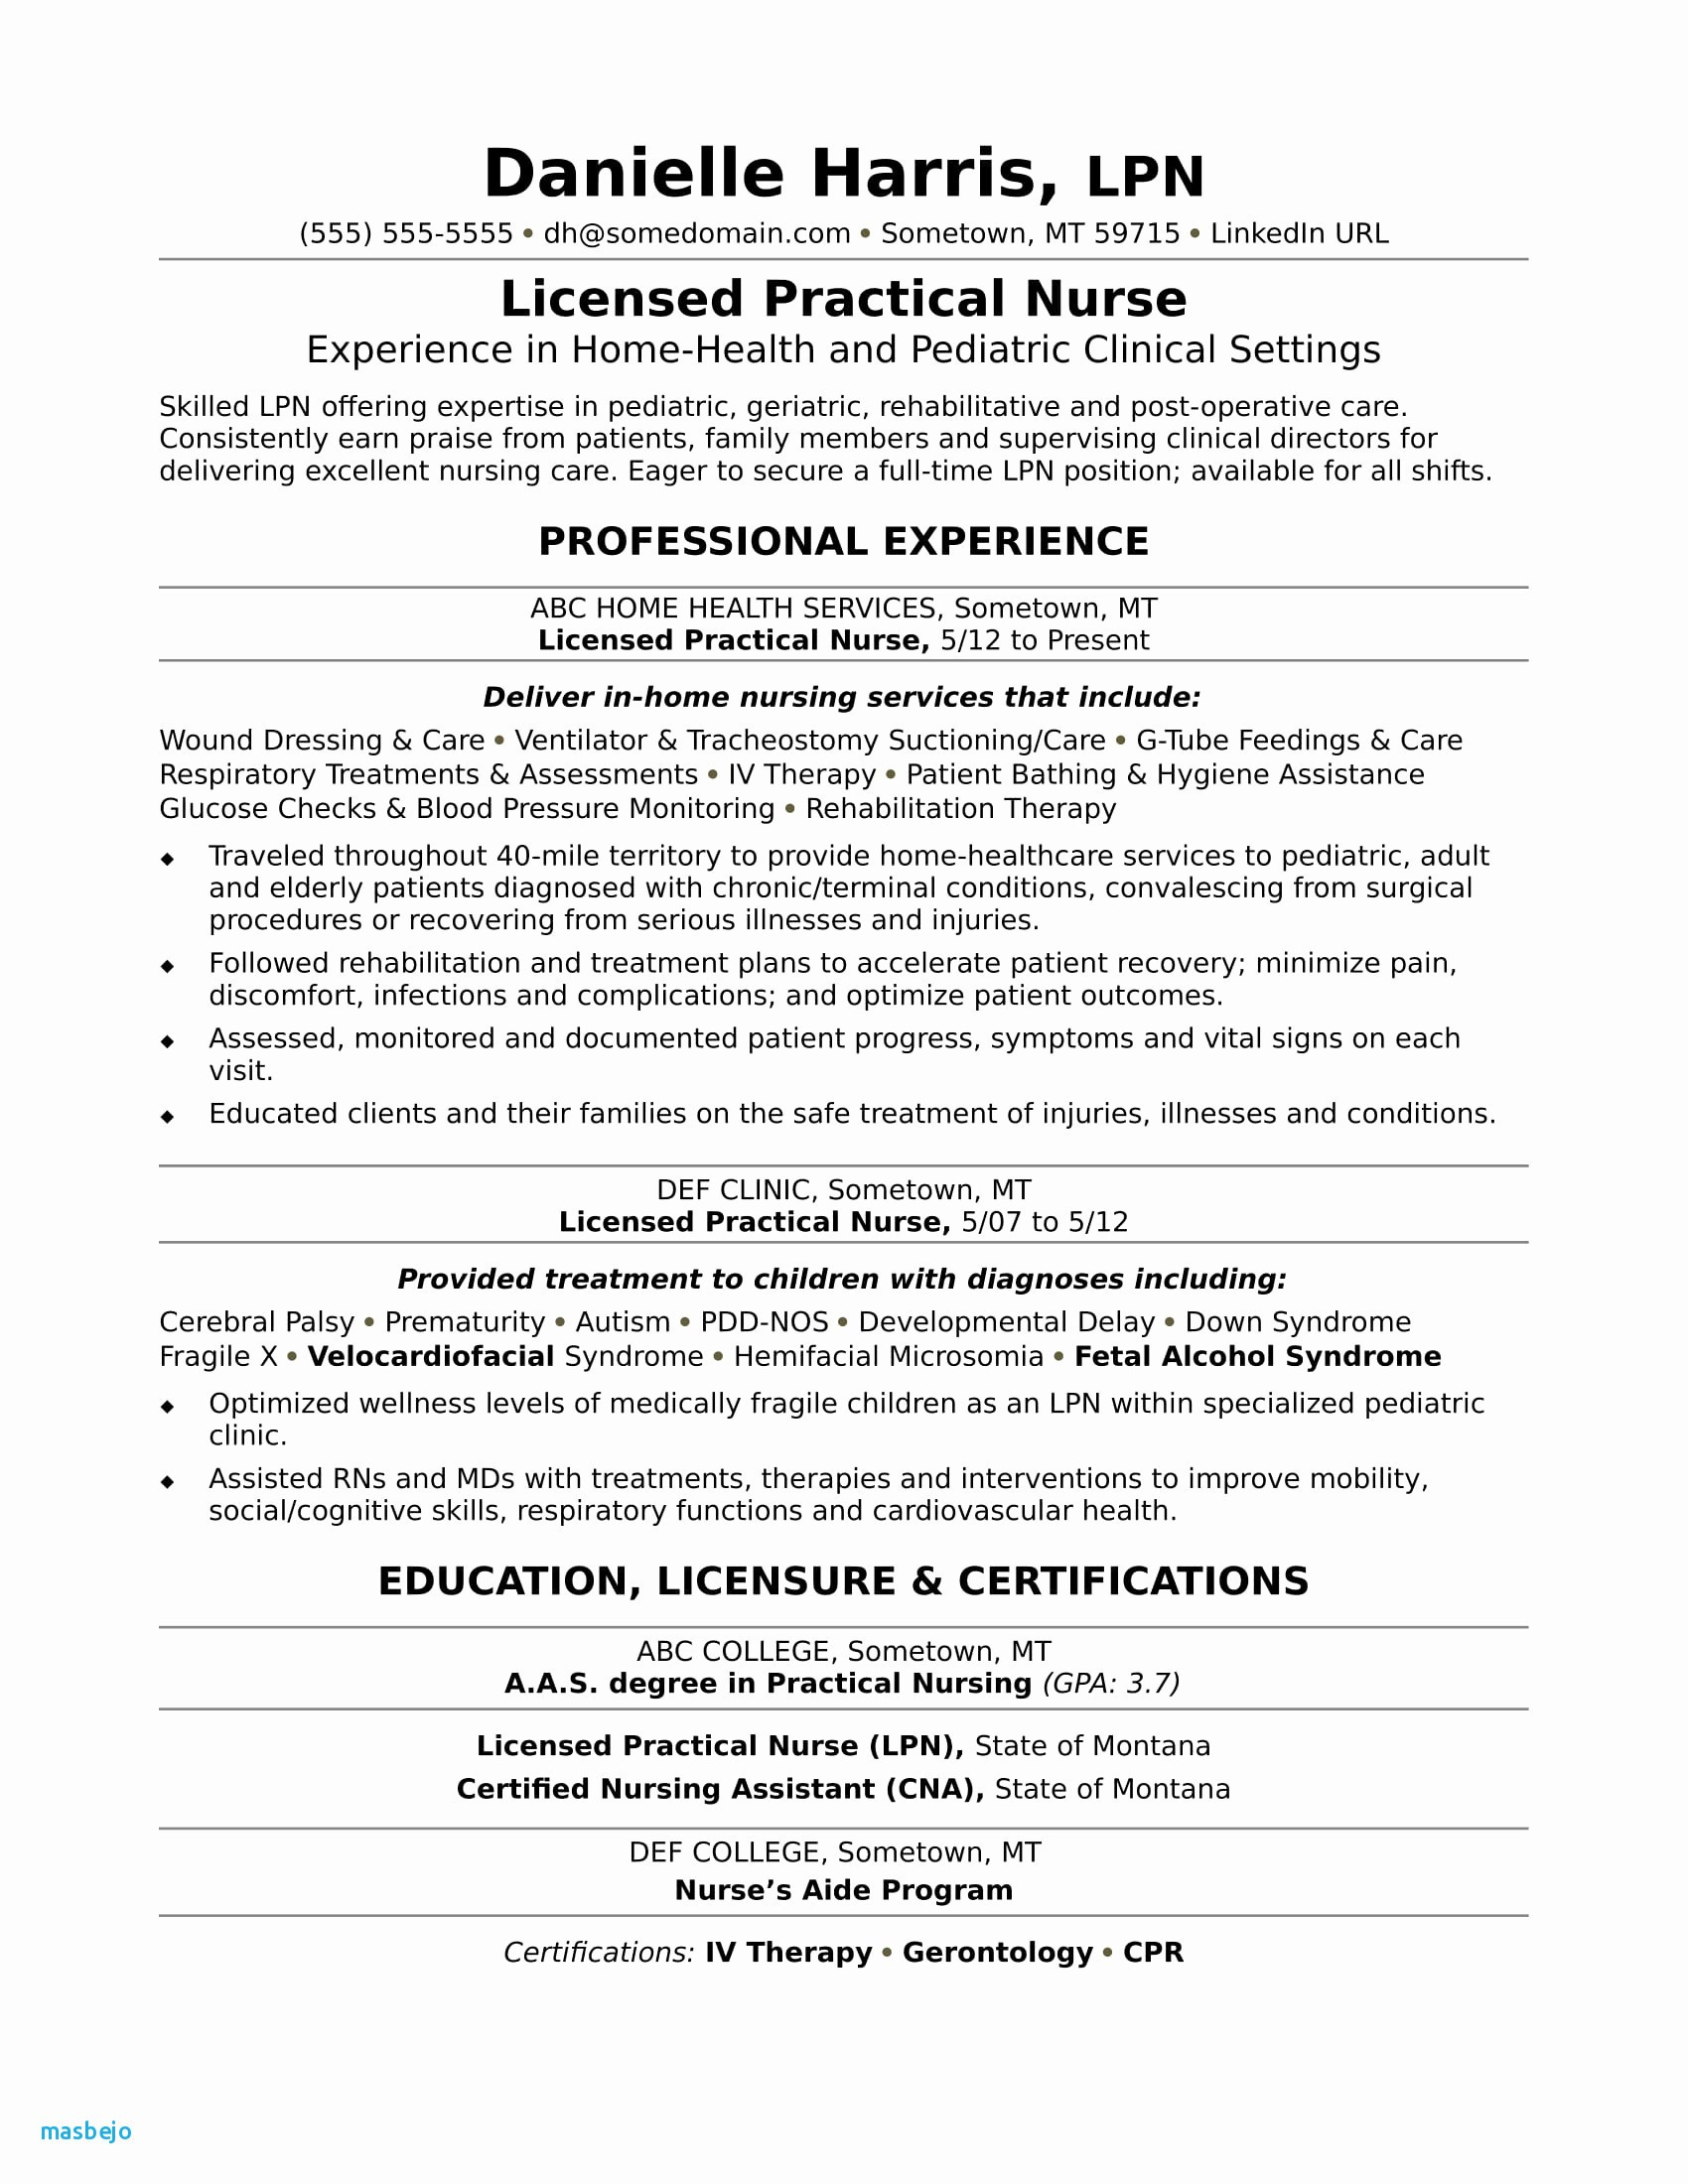 Home Care Nurse Resume - Sample Resume for A New Registered Nurse Resume Resume Examples